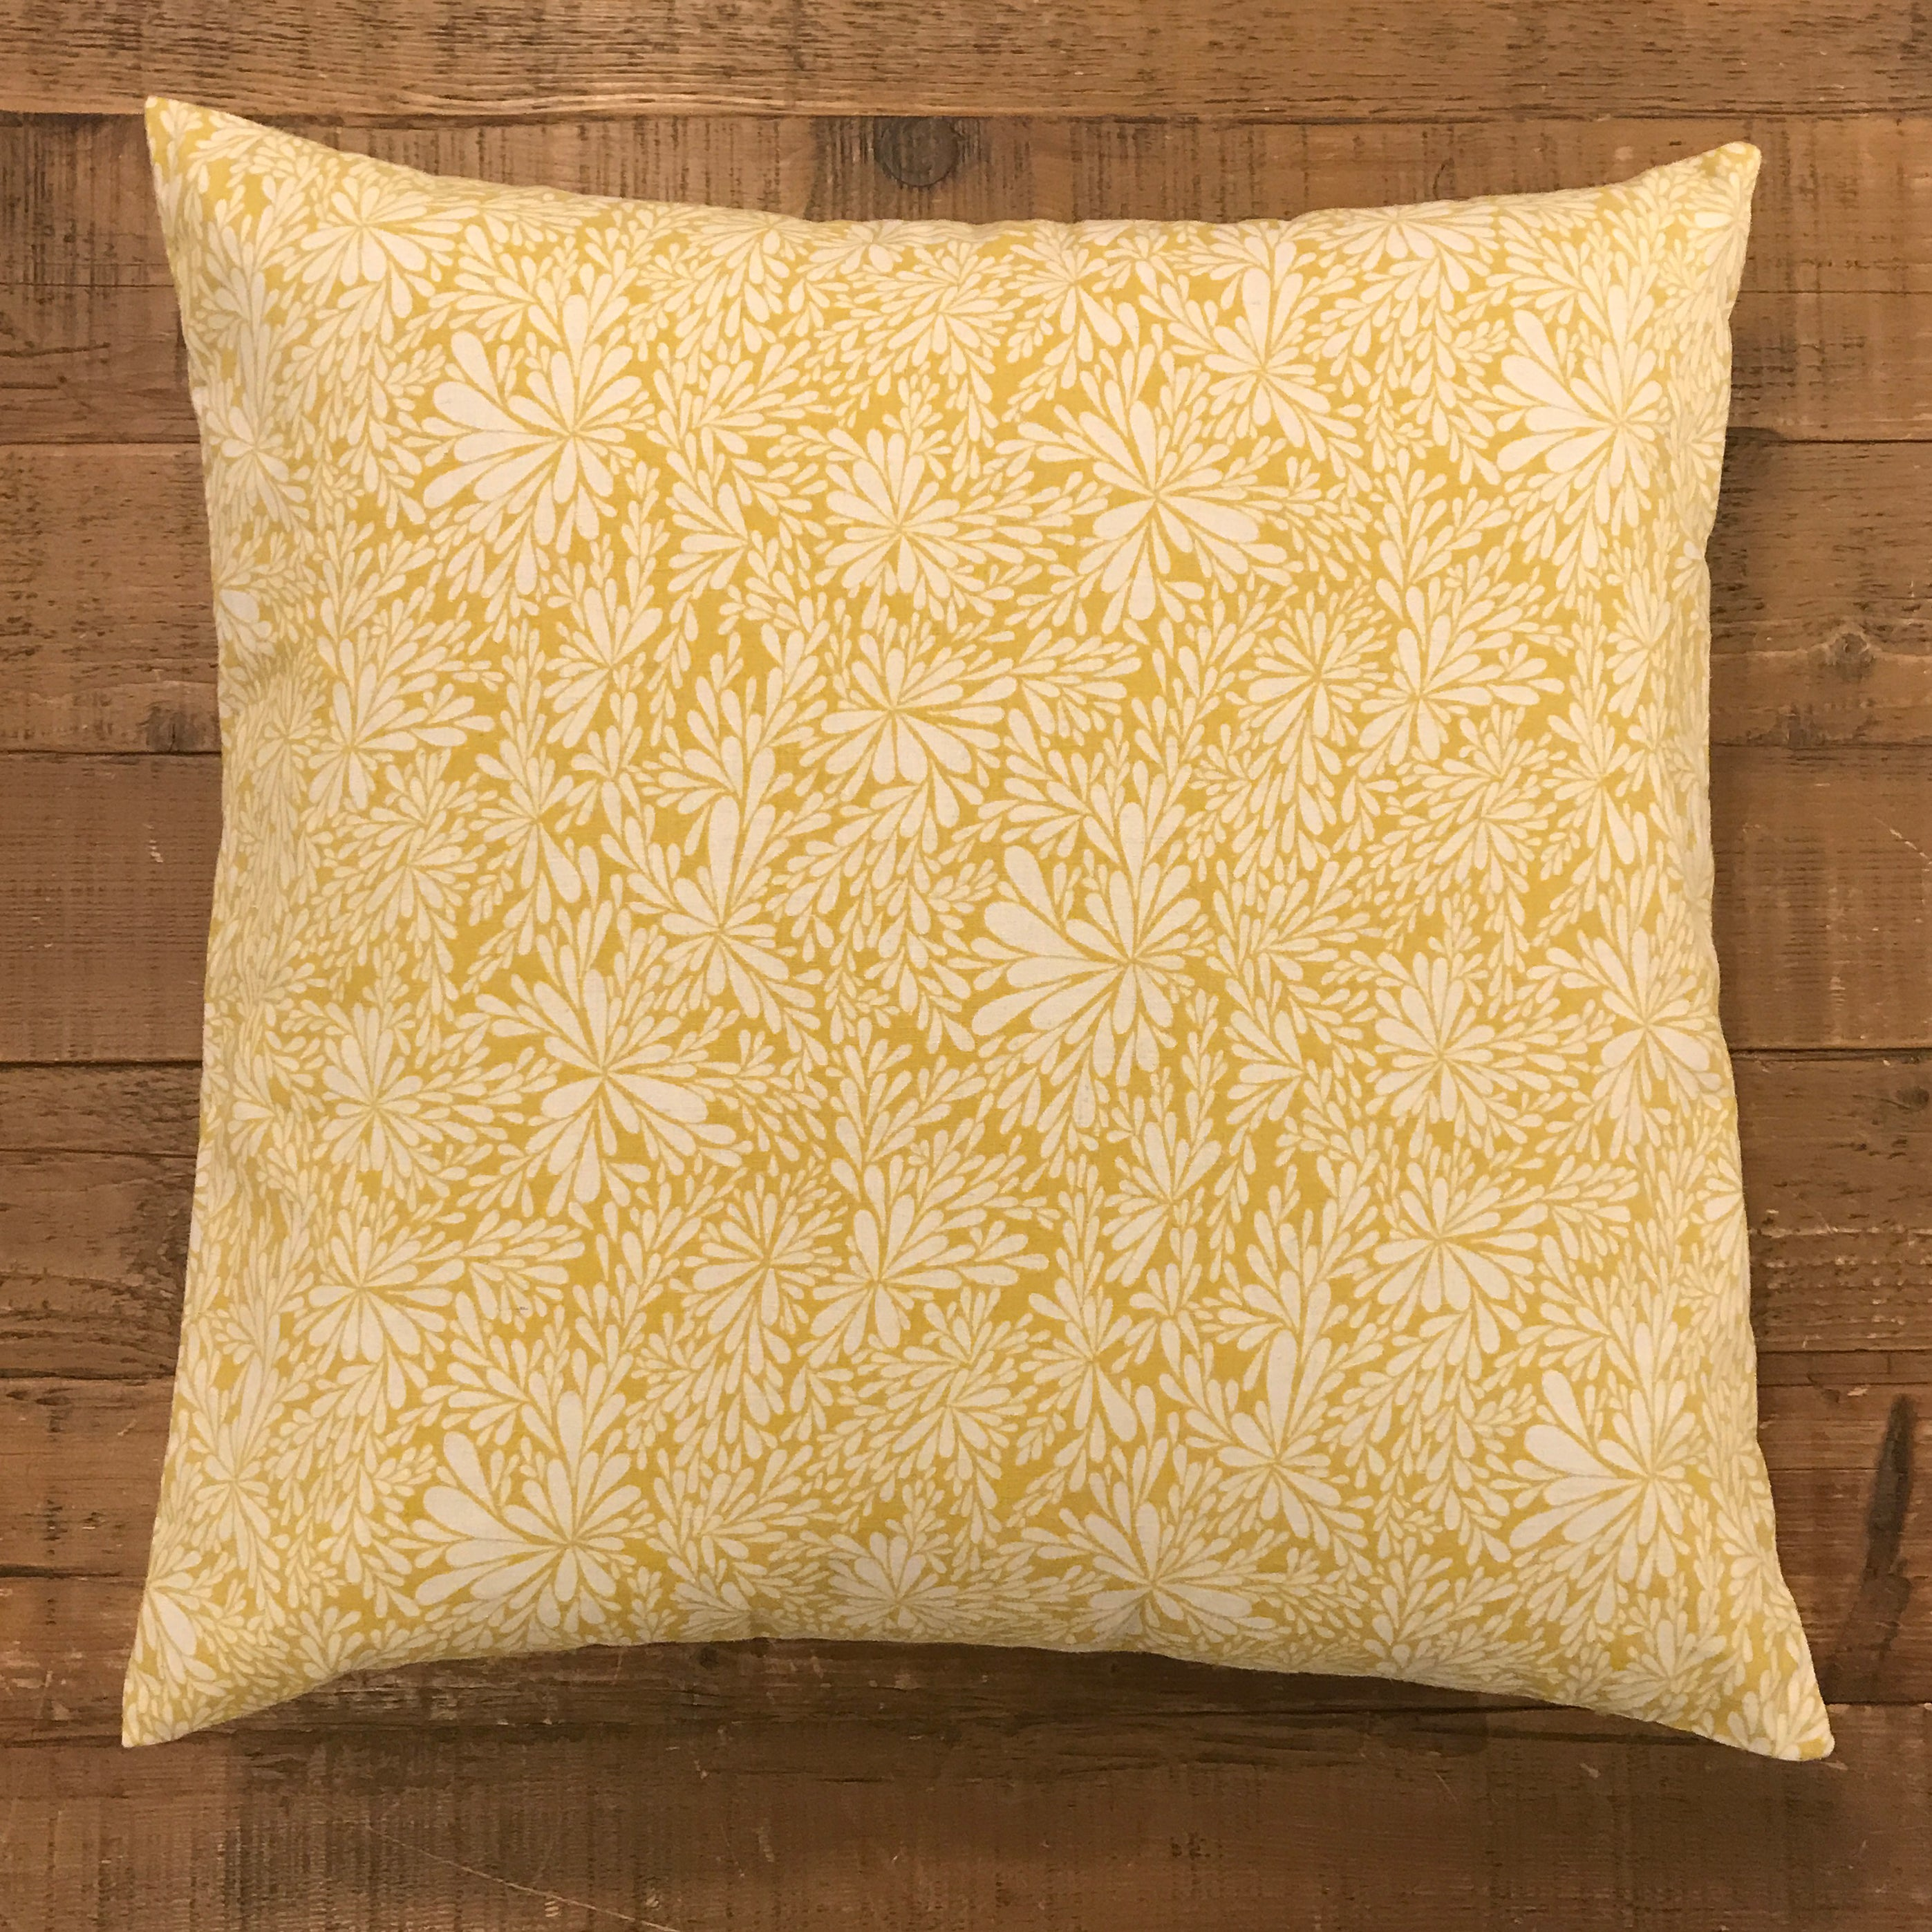 20x20 One of a kind pillow - Yellow floral